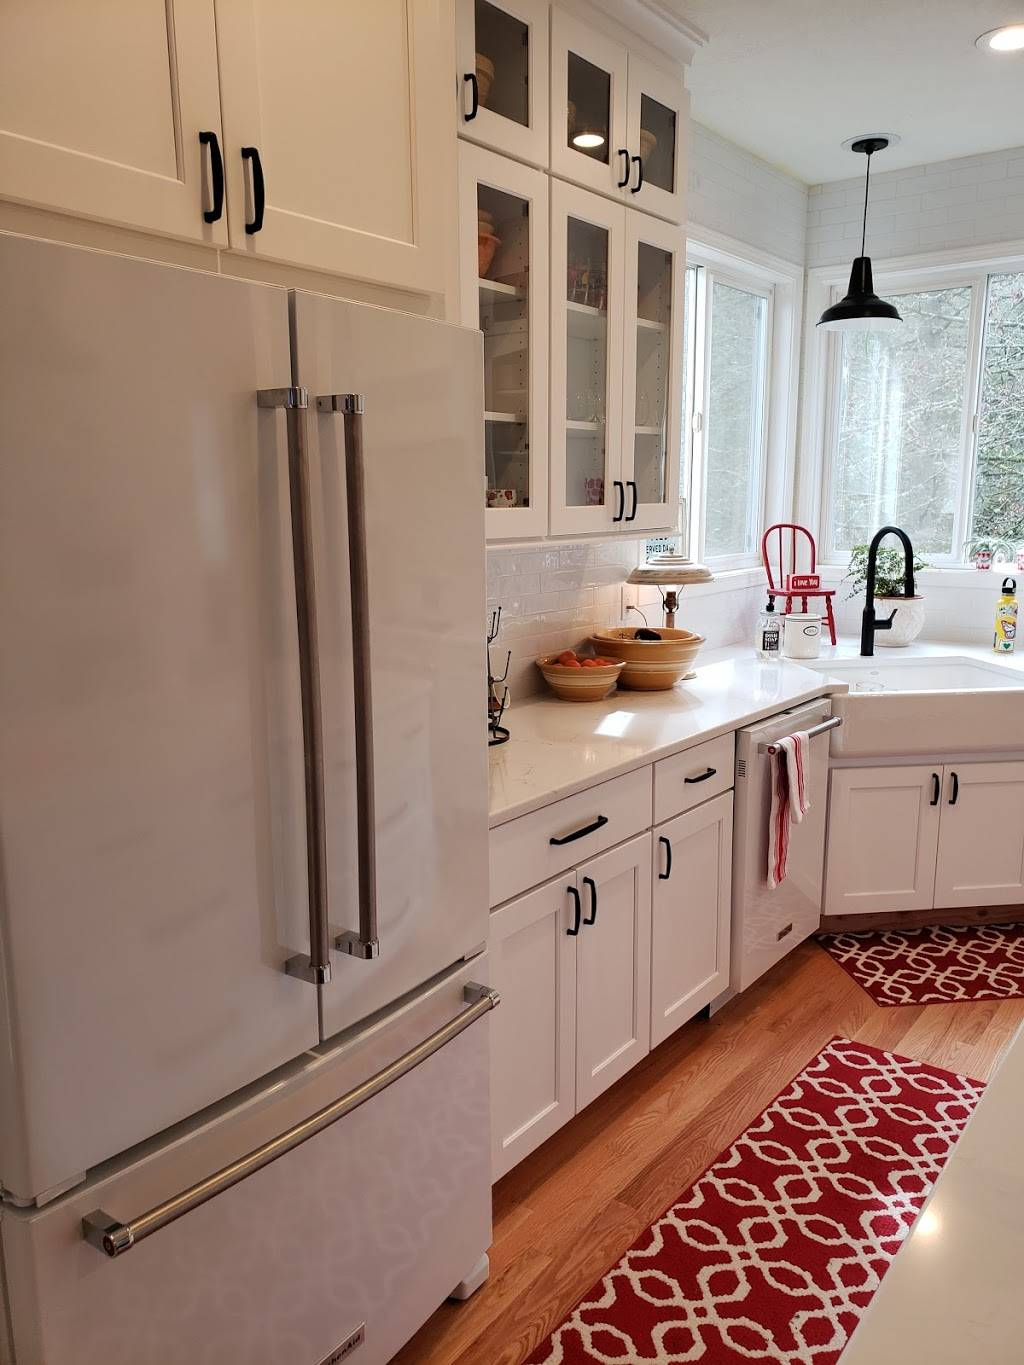 Rose Gold Kitchen Bath Remodel - home goods store  | Photo 10 of 10 | Address: Beaverton, OR 97007, USA | Phone: (503) 336-0323